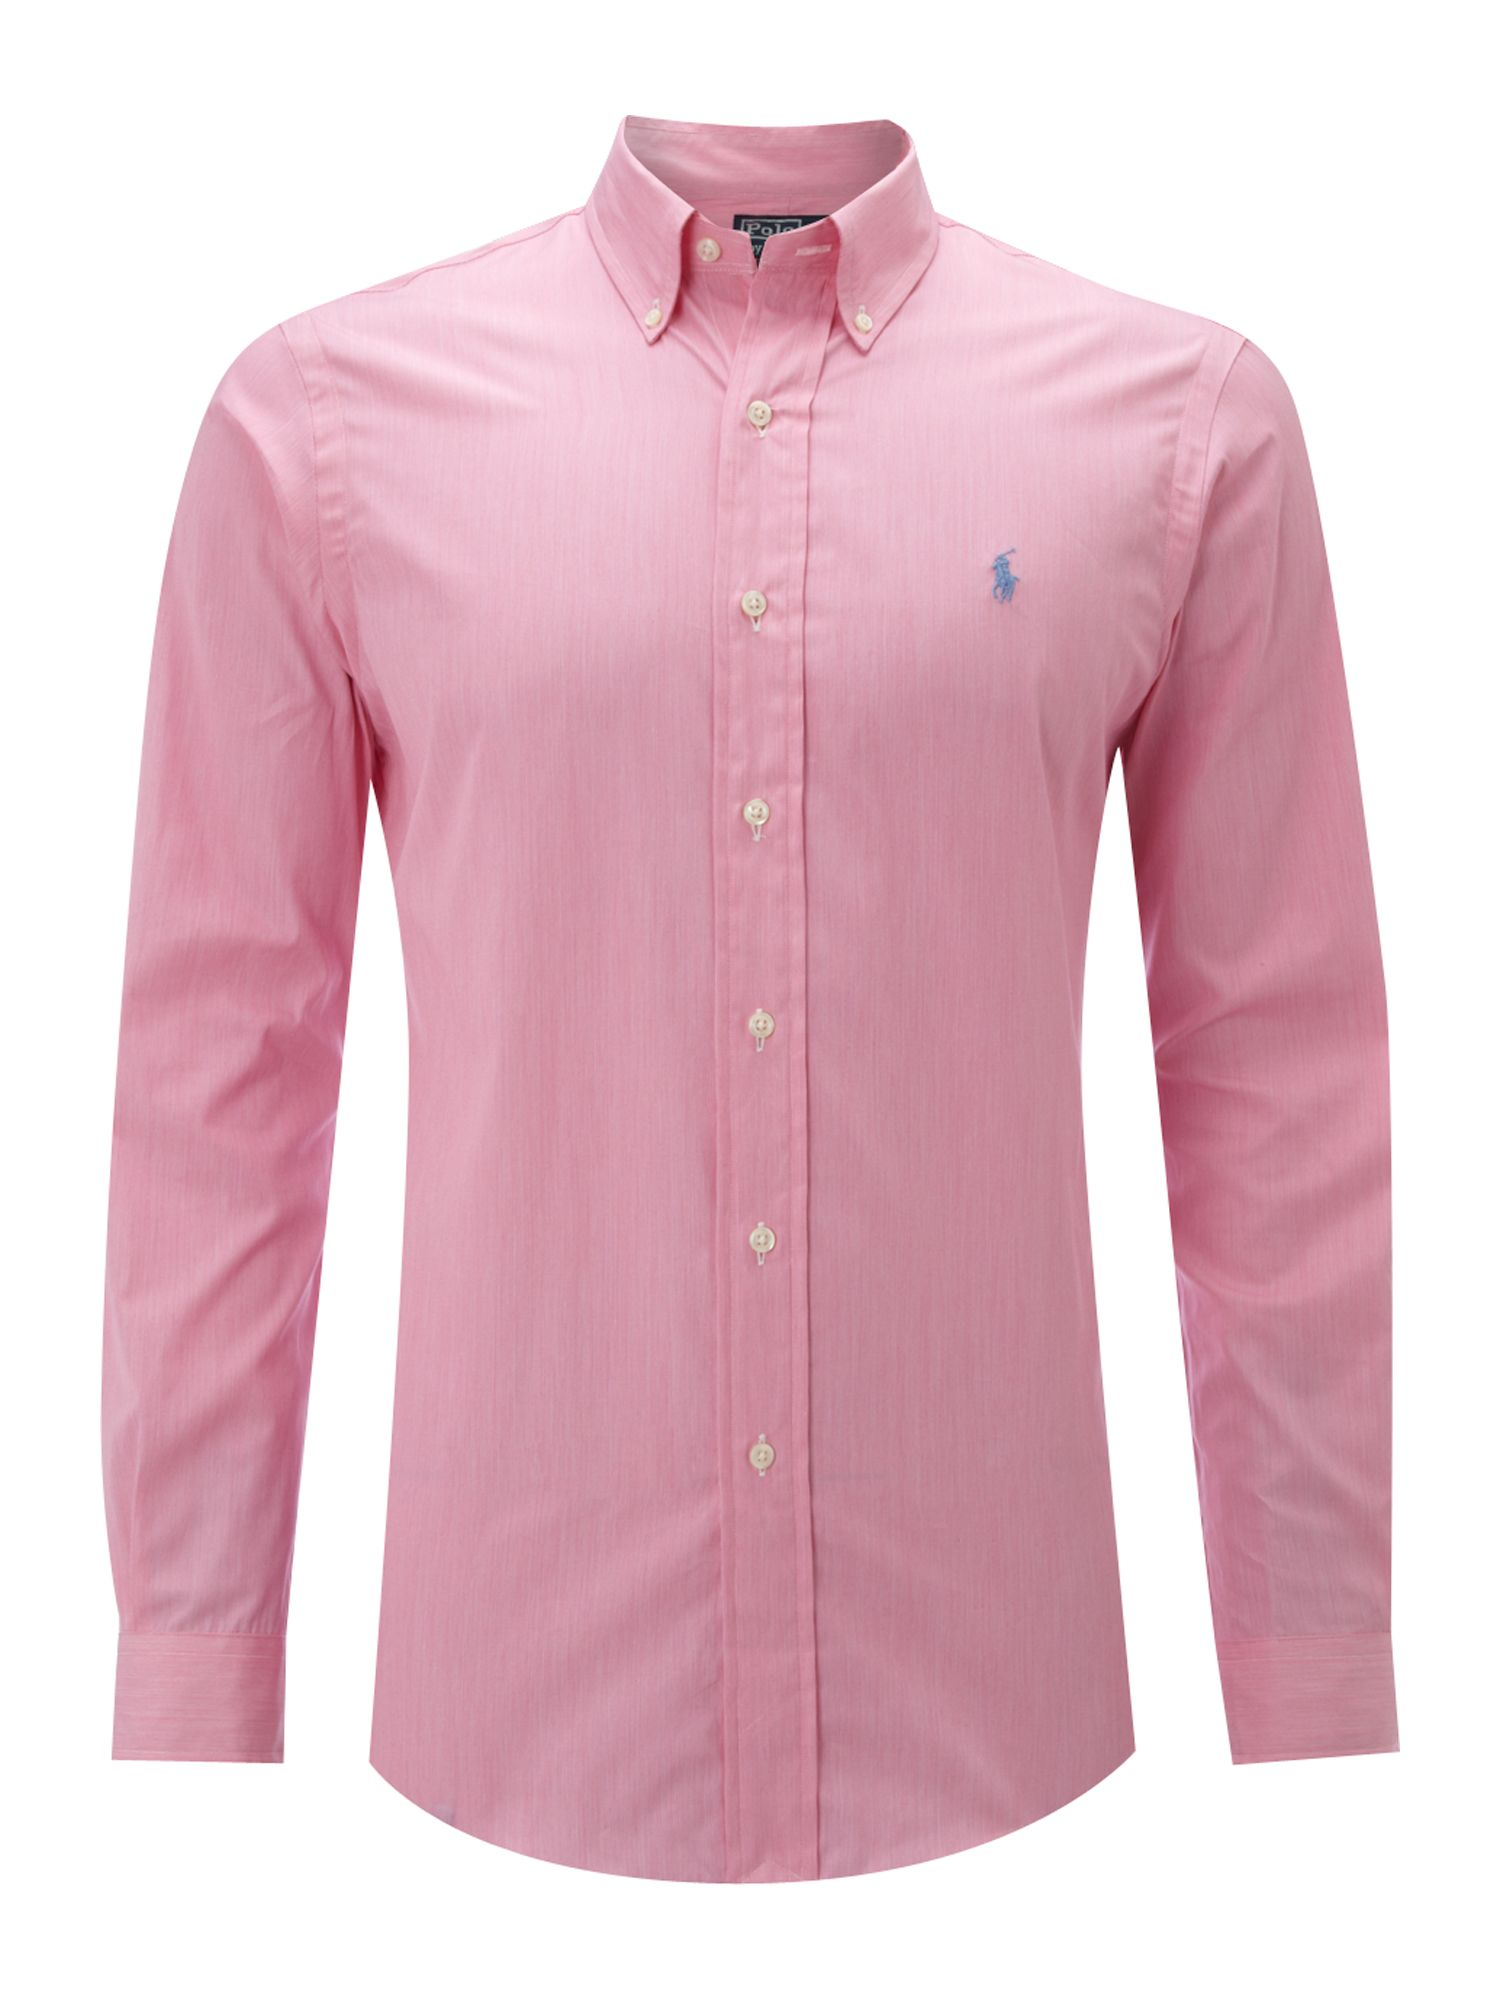 Polo Ralph Lauren Long Sleeved Custom Fitted Shirt In Pink